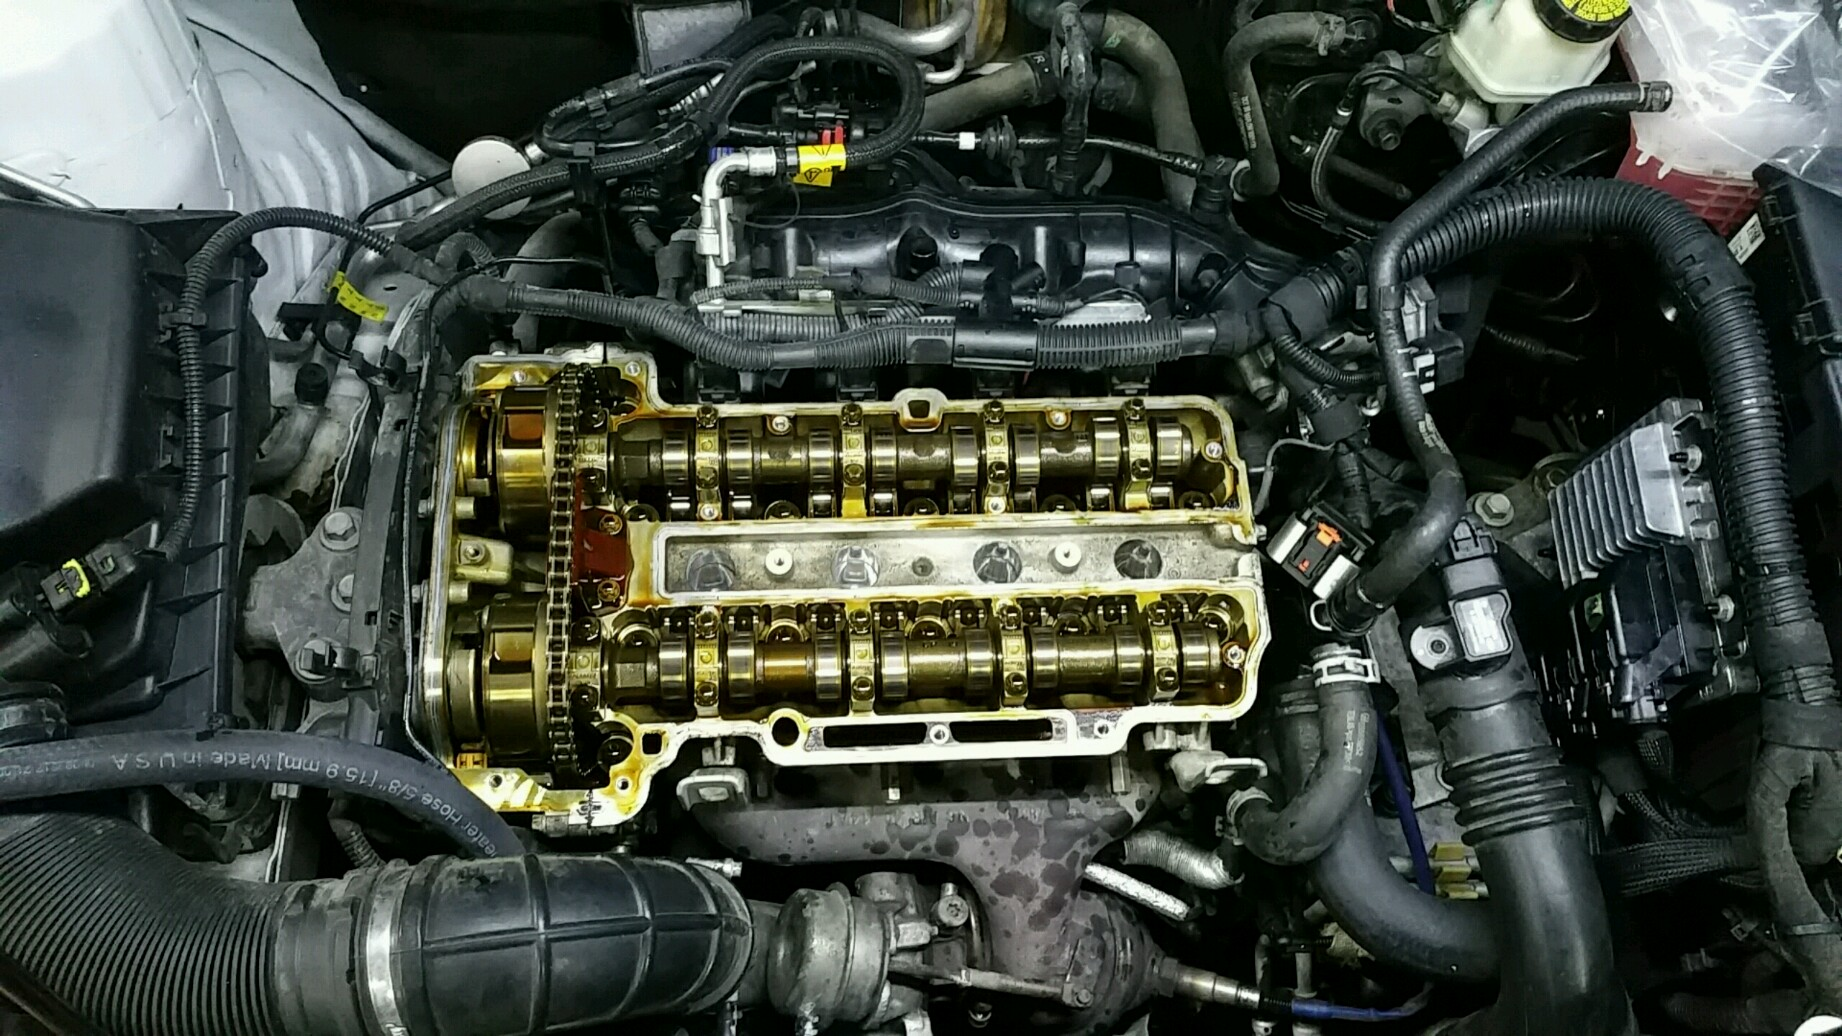 Oil everywhere  Most likely cause? | Chevrolet Cruze Forums